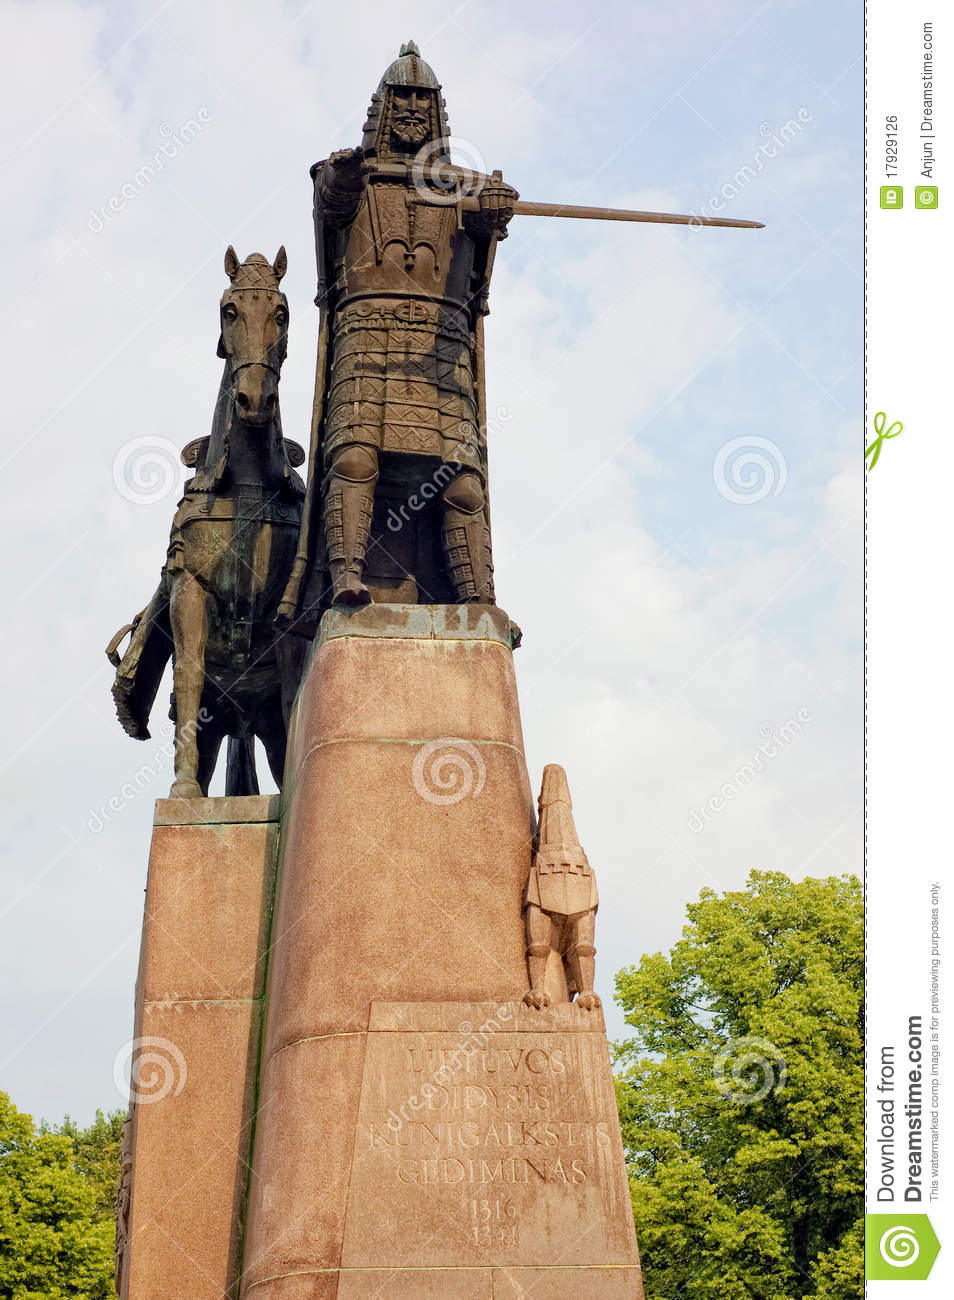 Statue of Gediminas, the ruler of Lithuania